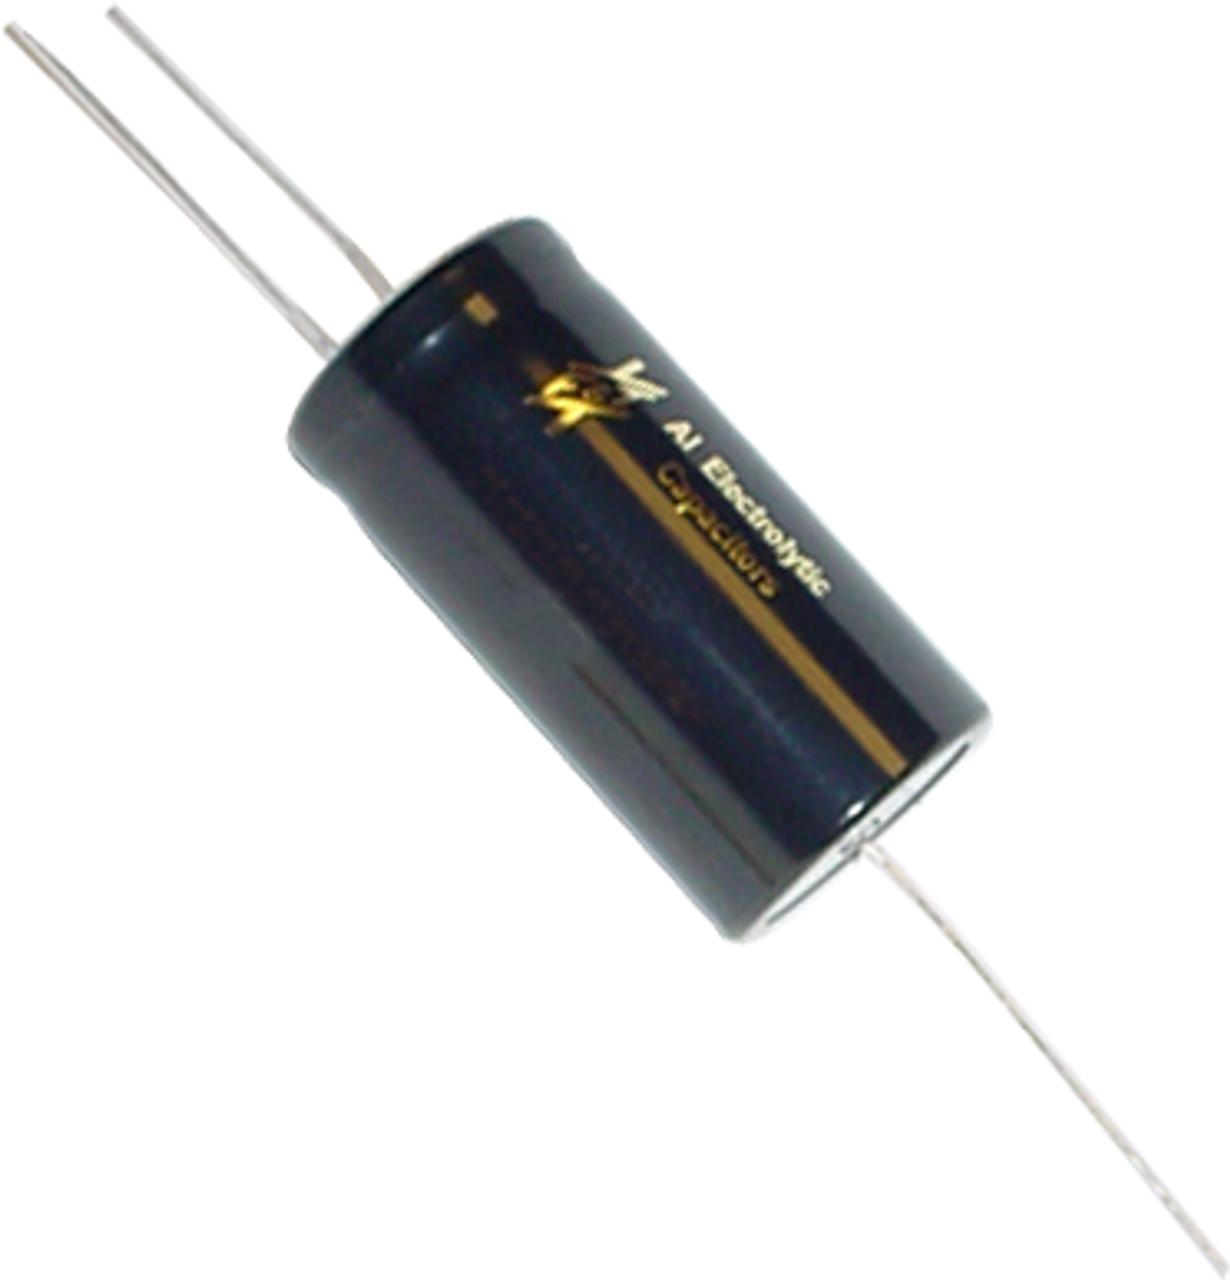 F&T Capacitor - Electrolytic, Multi-Section, Axial Lead, 25/25µF 25V